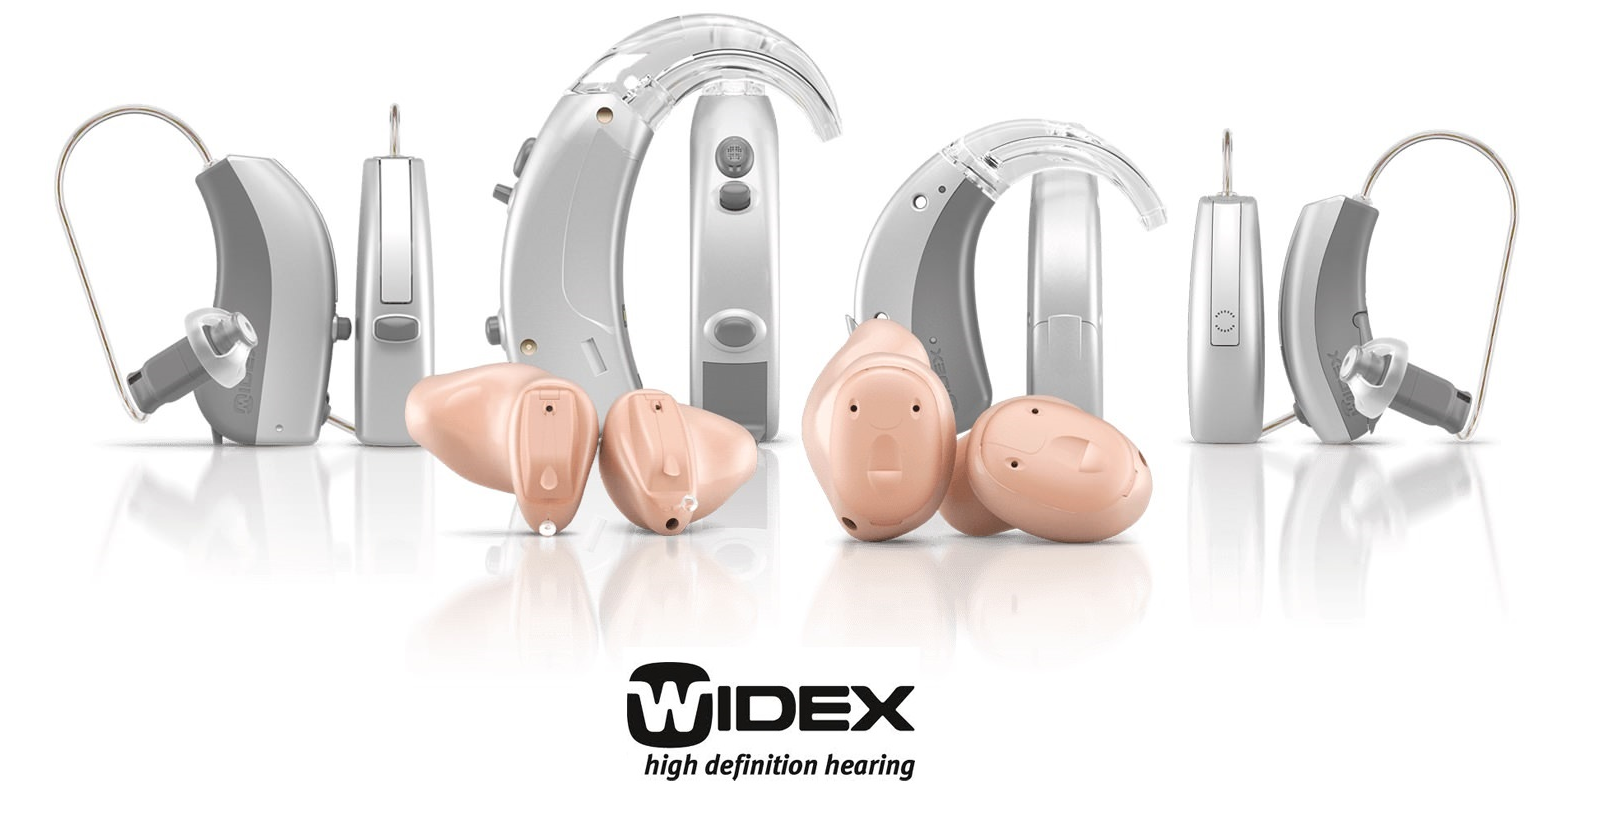 Widex Hearing Aids All Prices Shown Save Up To 40